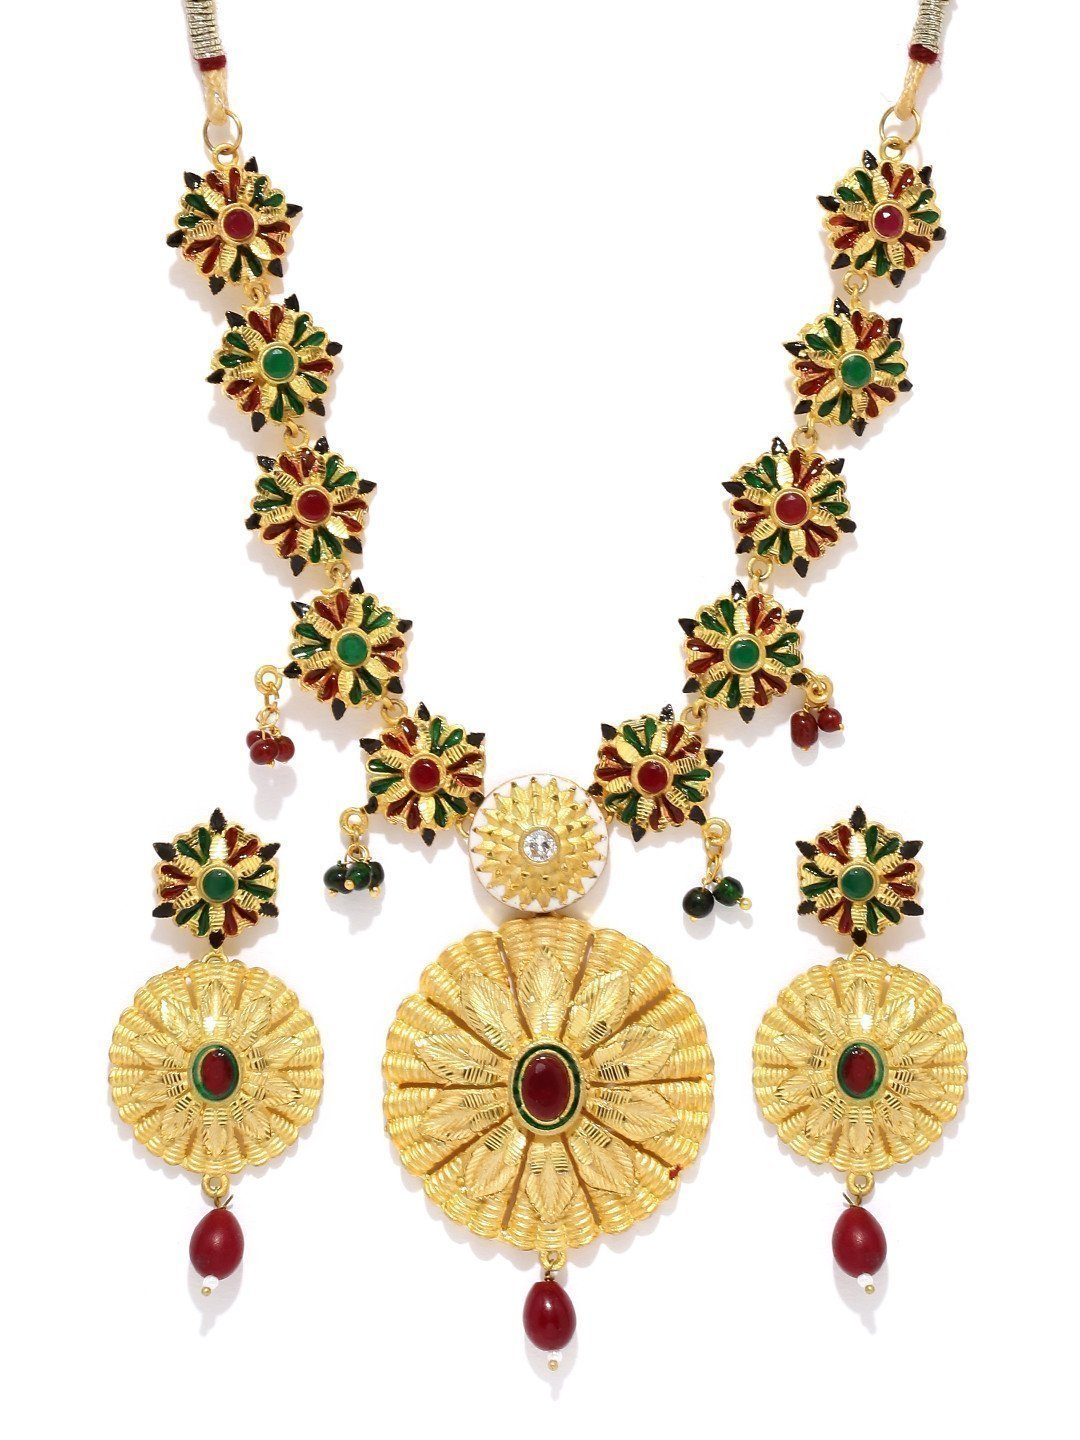 Gold Look Floral Necklace Set - Zpfk5842